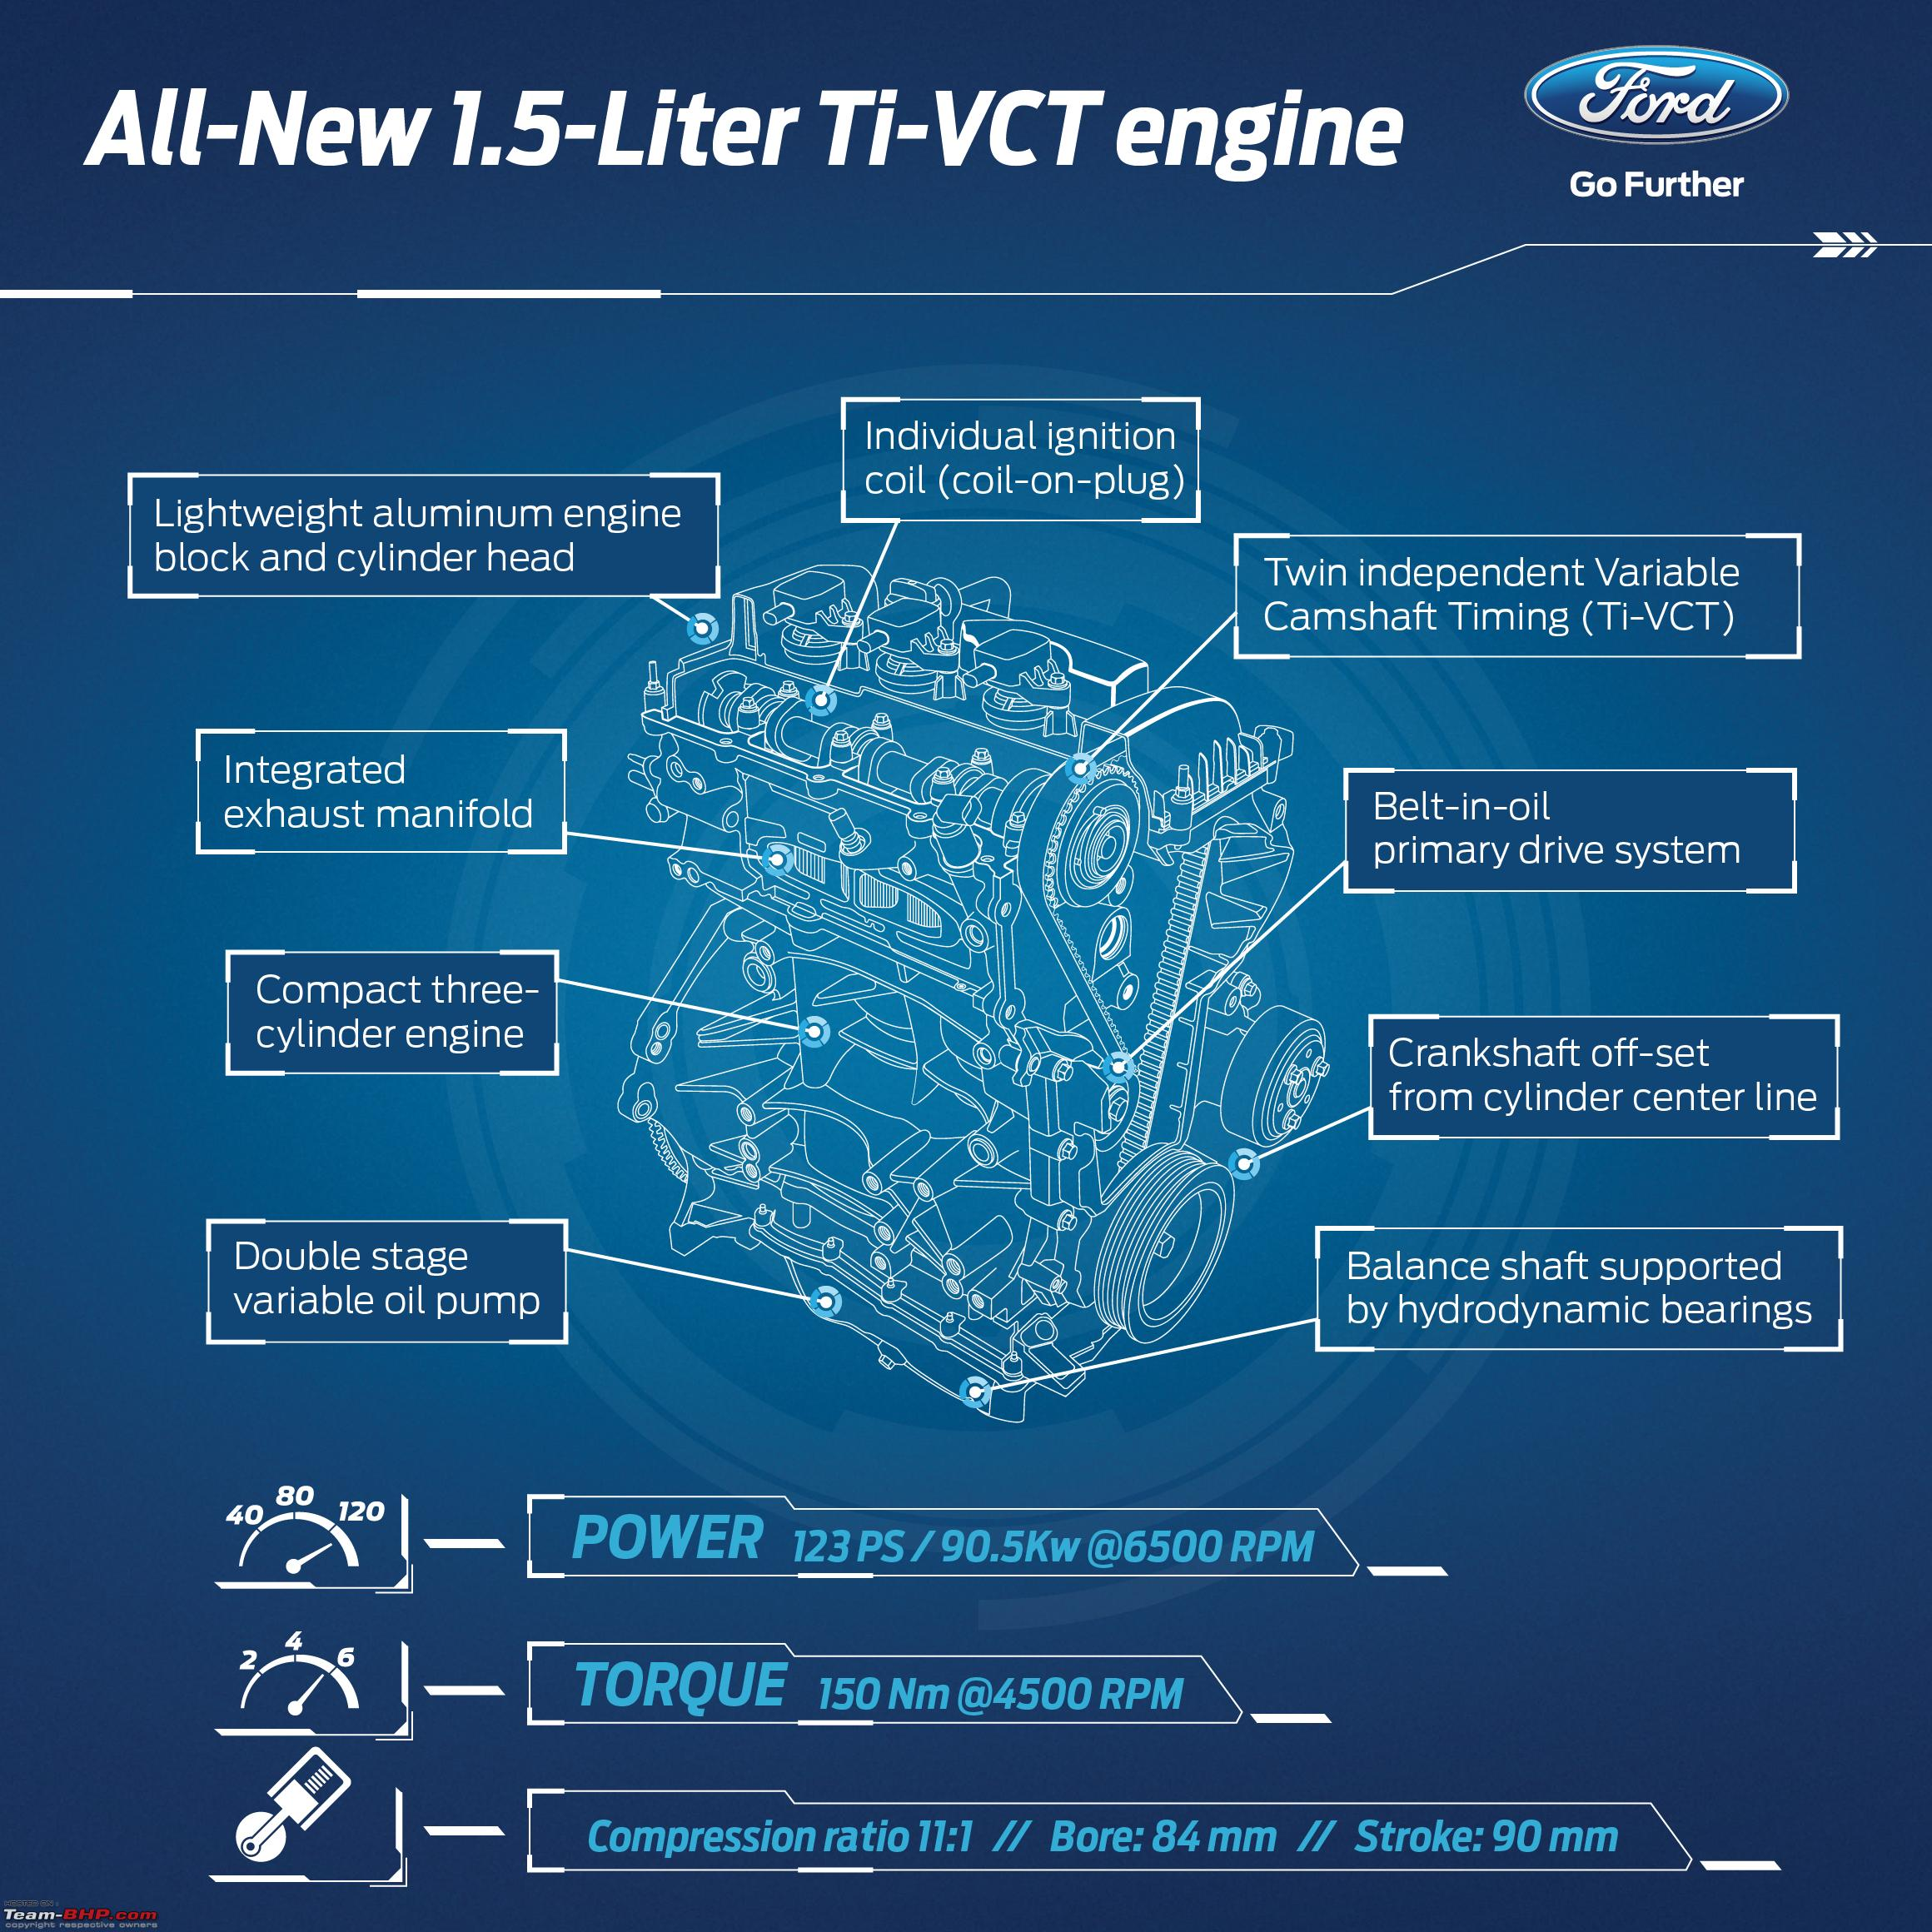 a close look at ford's new 1 5l 3-cylinder dragon petrol engine-customers